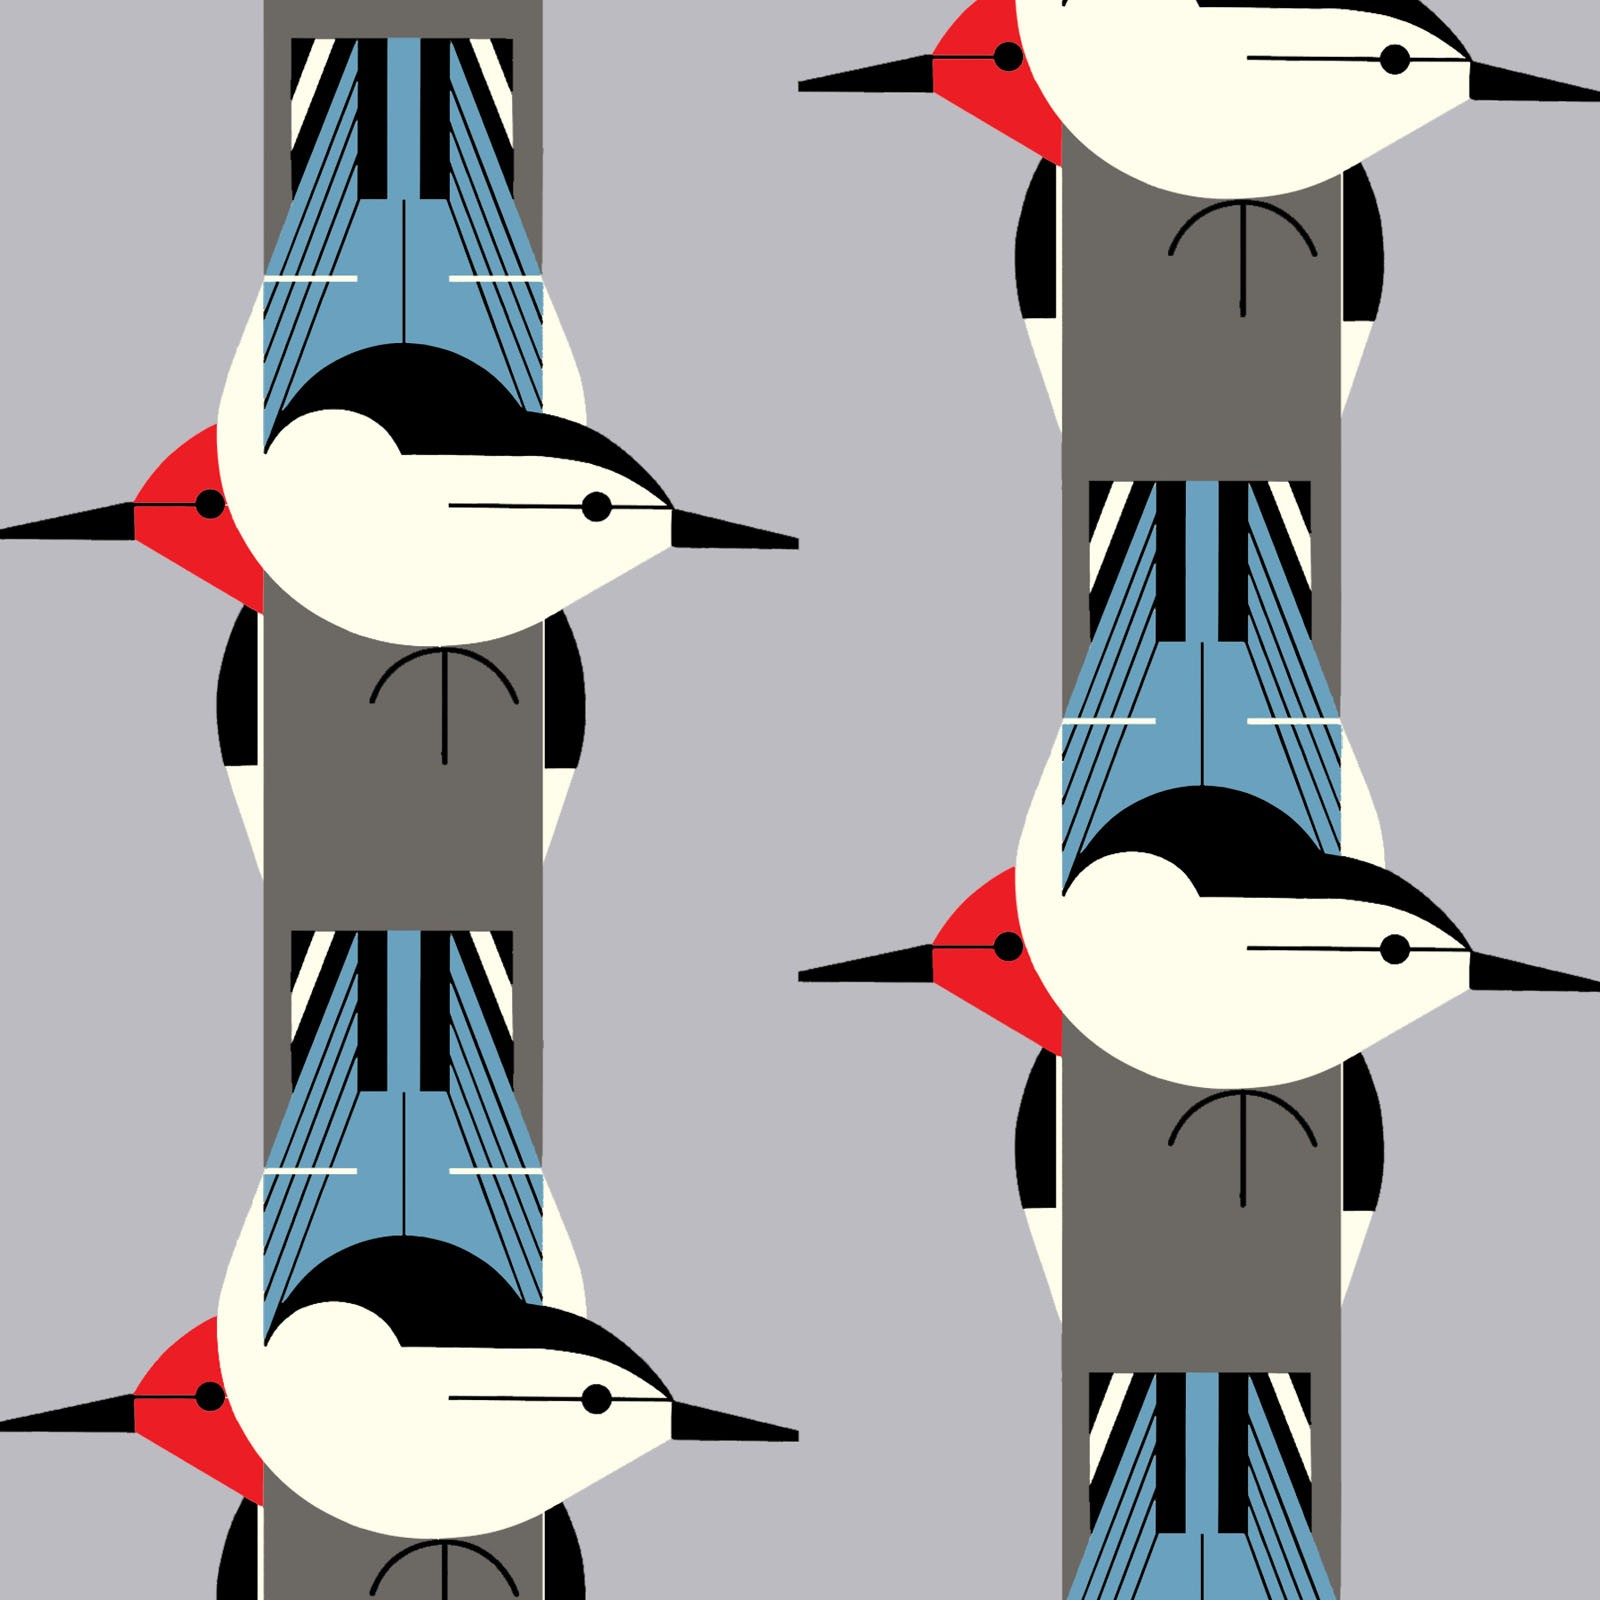 Upside Downside (Poplin Fabric) by Charley Harper from the Best of Charley Harper collection for Birch #CH87Green